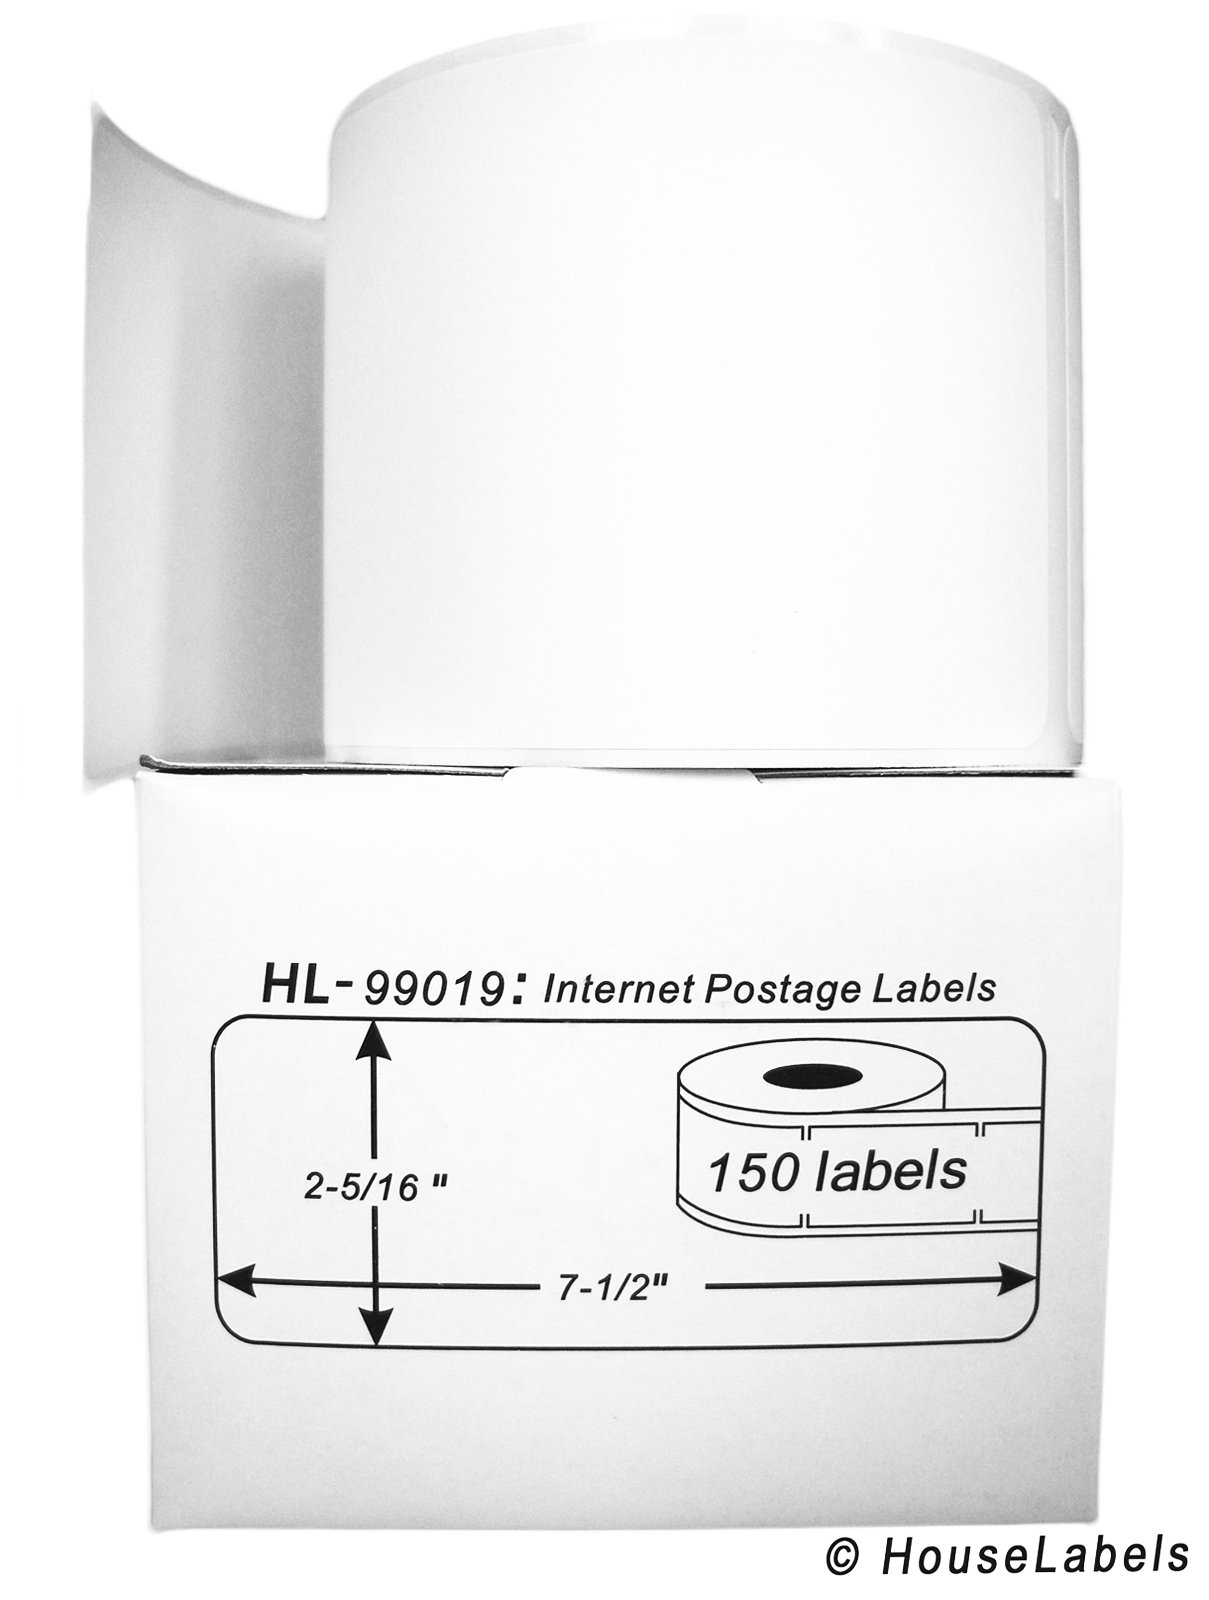 12 Rolls; 150 Labels per Roll of HouseLabels Compatible with DYMO 99019 1-Part Internet Postage Labels (2-5/16'' x 7-1/2'') - BPA Free! by Label Lines